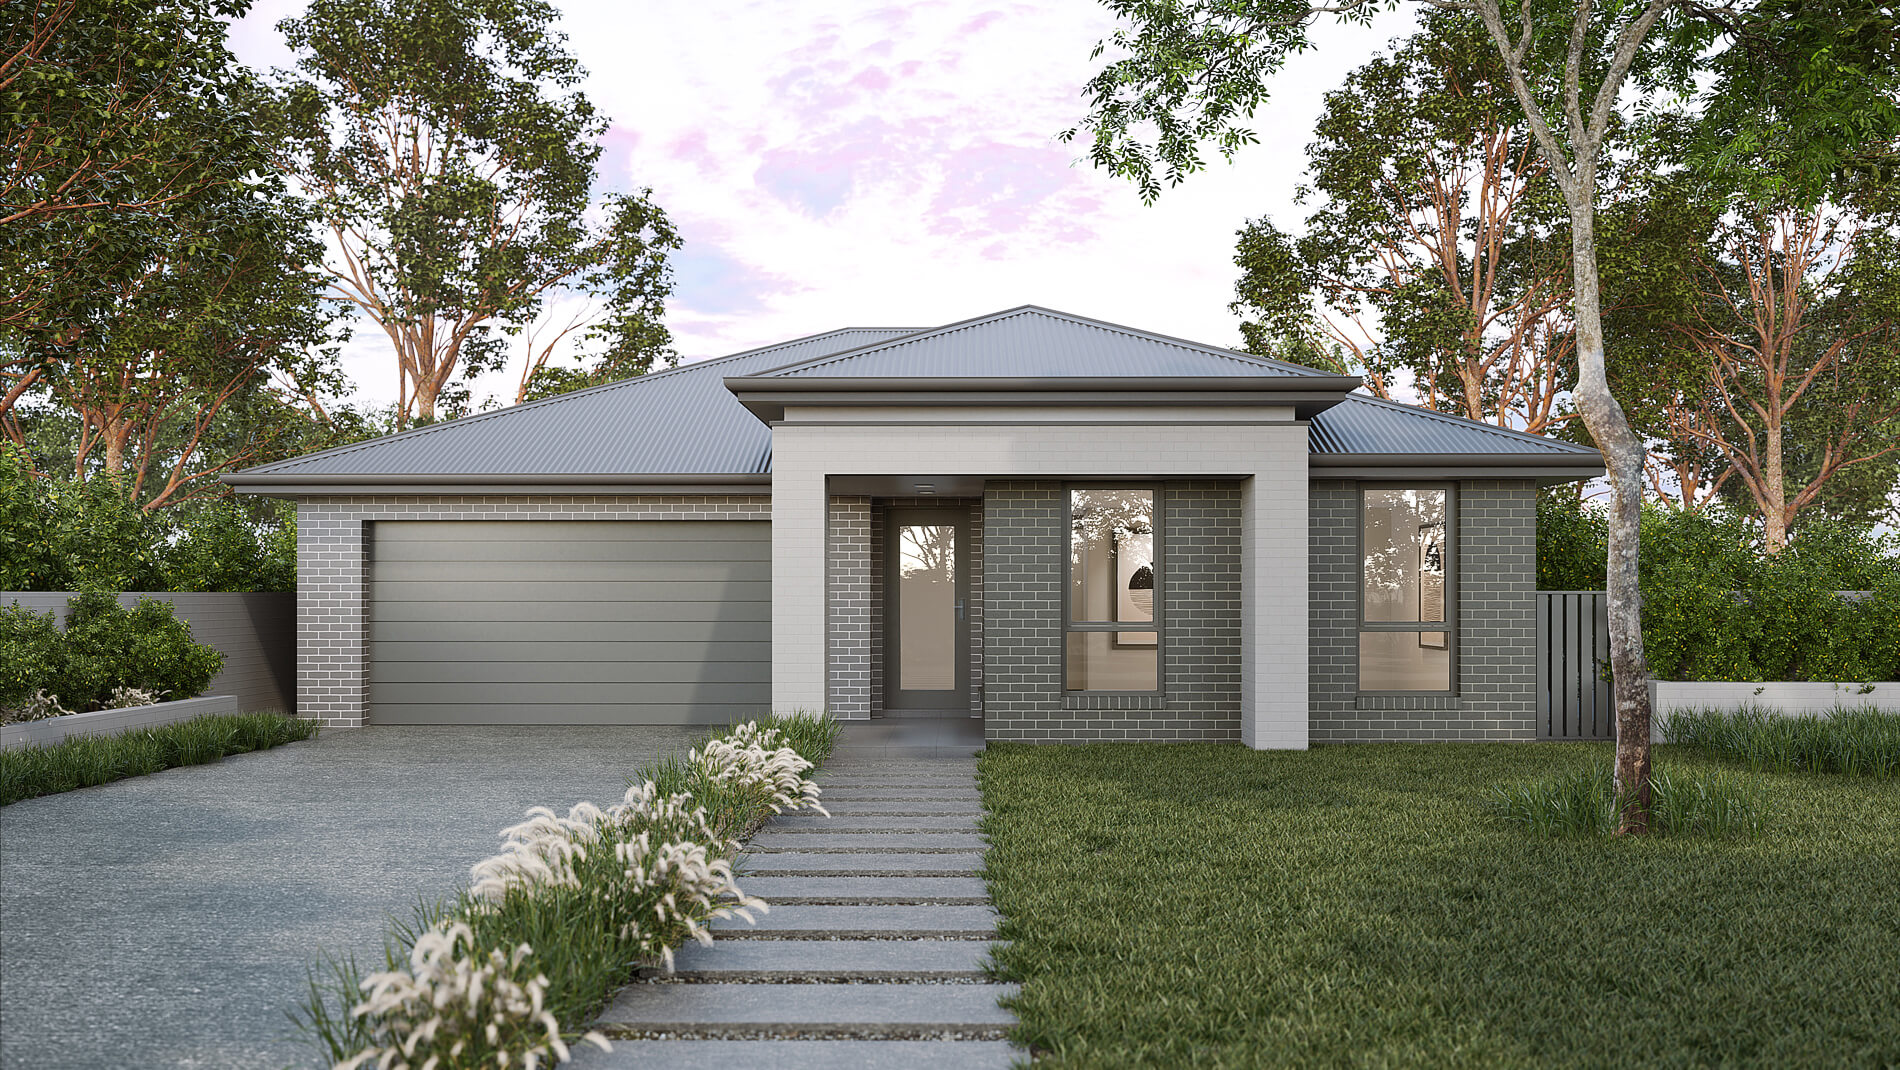 Versatile Homes Woodland Style Façade from our Luxe Collection. An ideal styling where to be located within a new or established leafy neighbourhood.